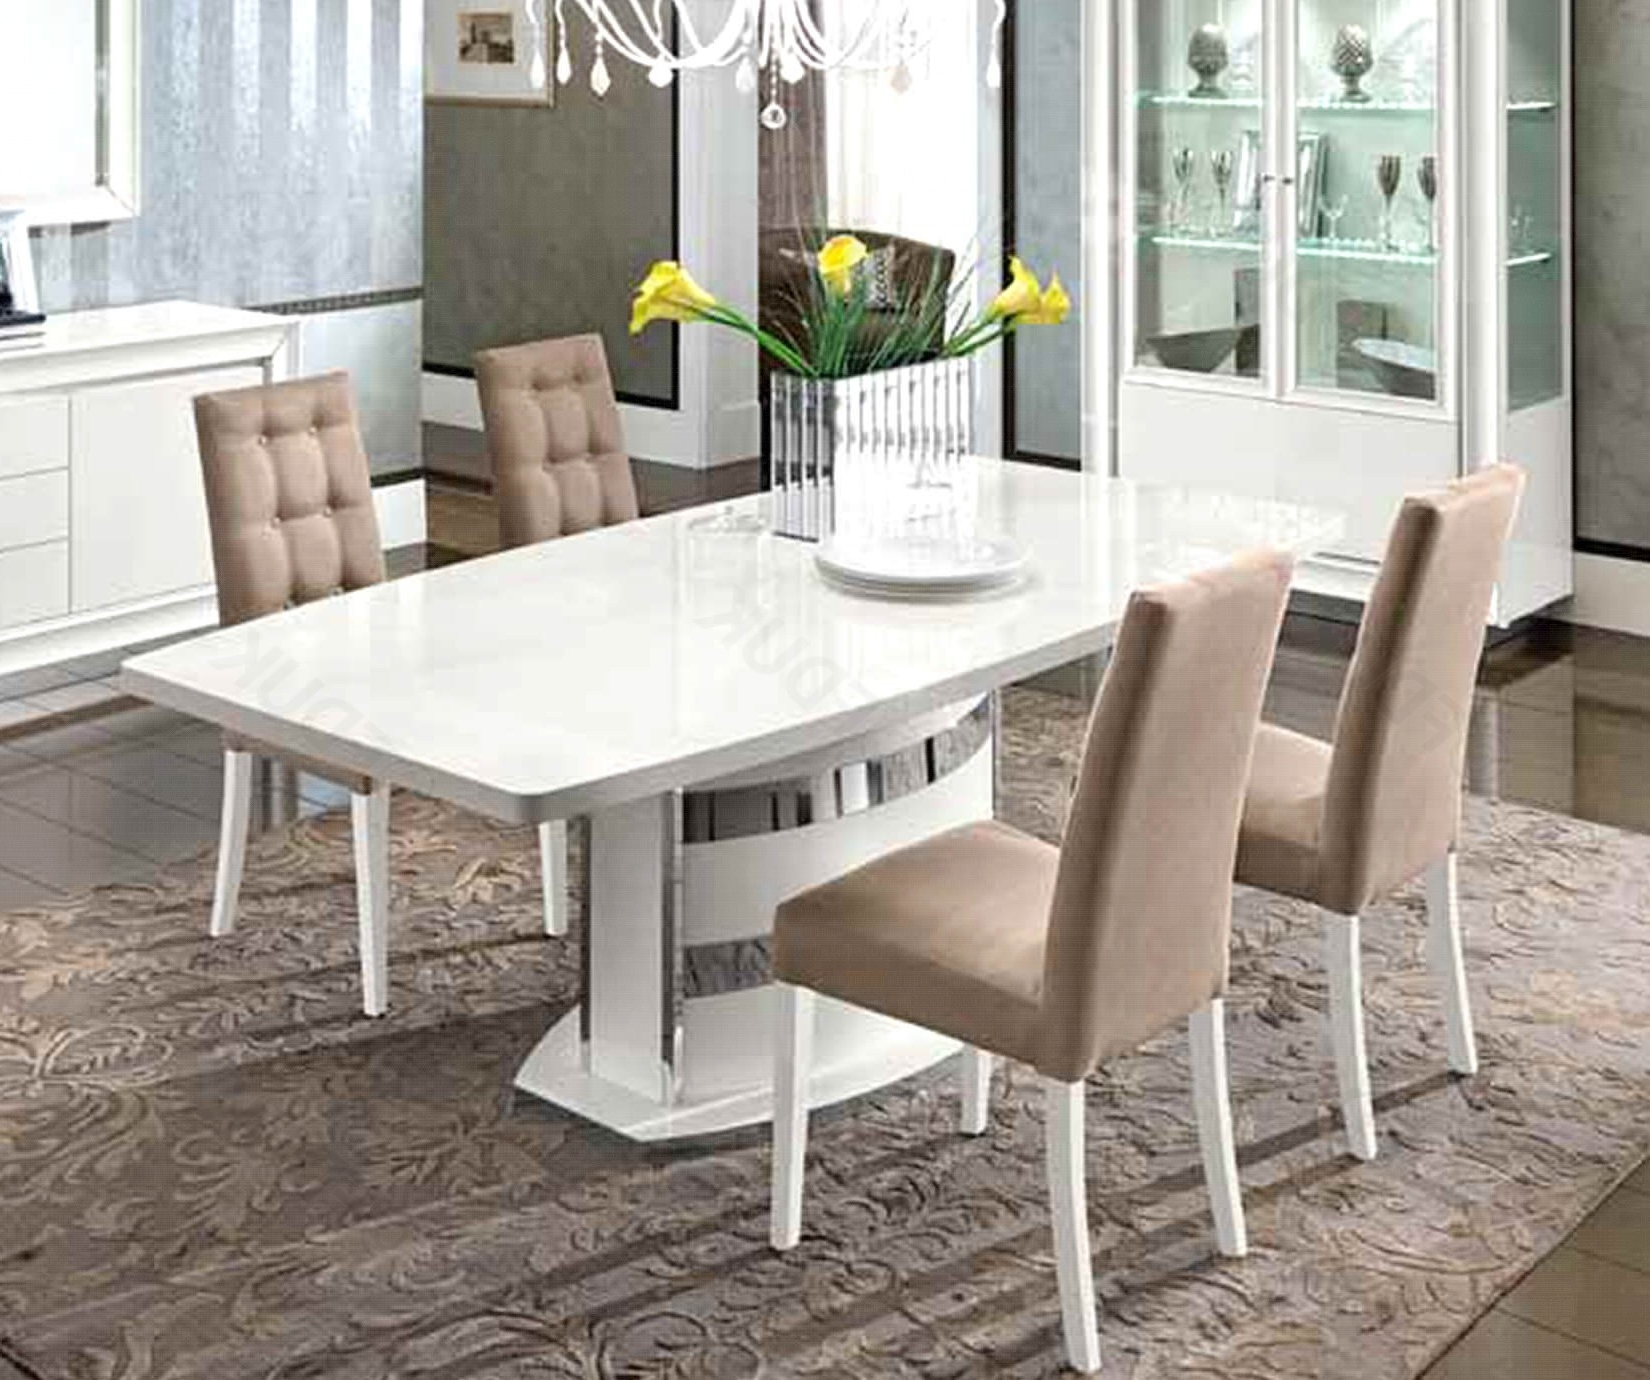 Most Recent White Gloss Extendable Dining Tables Throughout The 26 New White High Gloss Extending Dining Table – Welovedandelion (View 14 of 25)